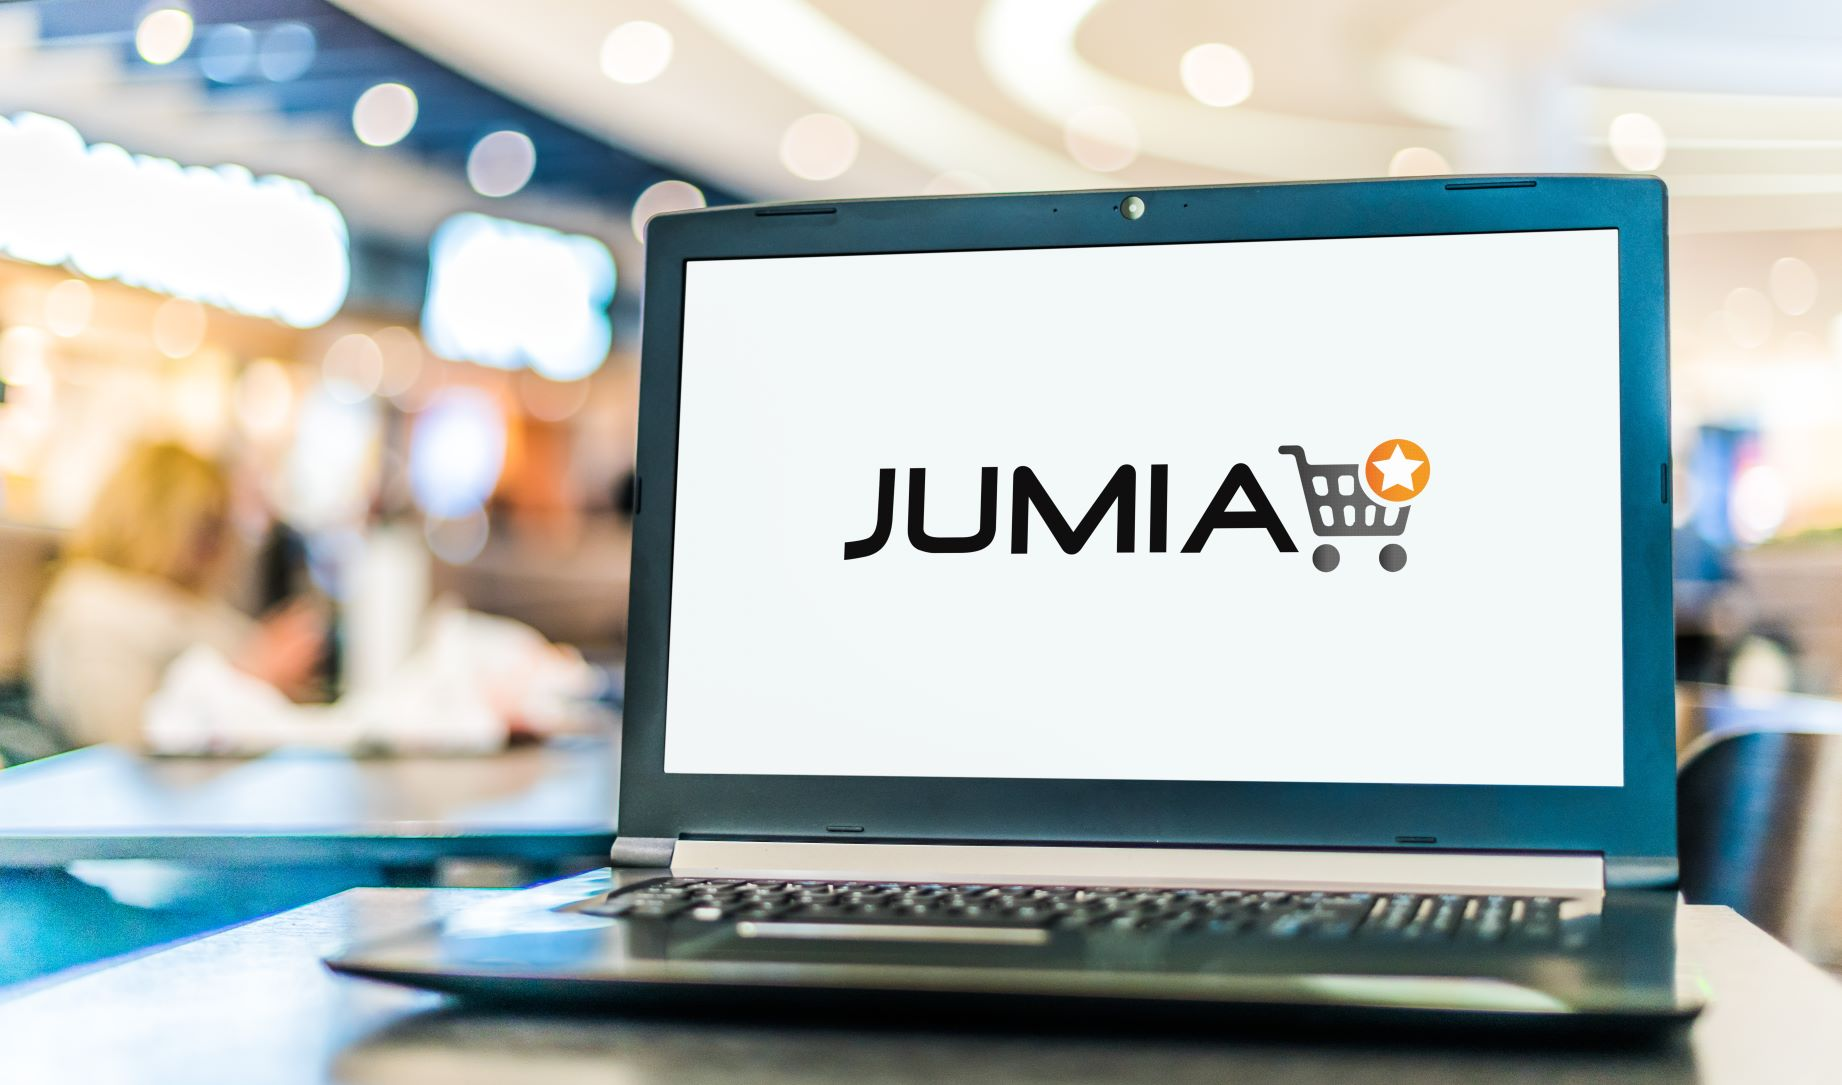 Jumia makes a strong case for its strategic shift